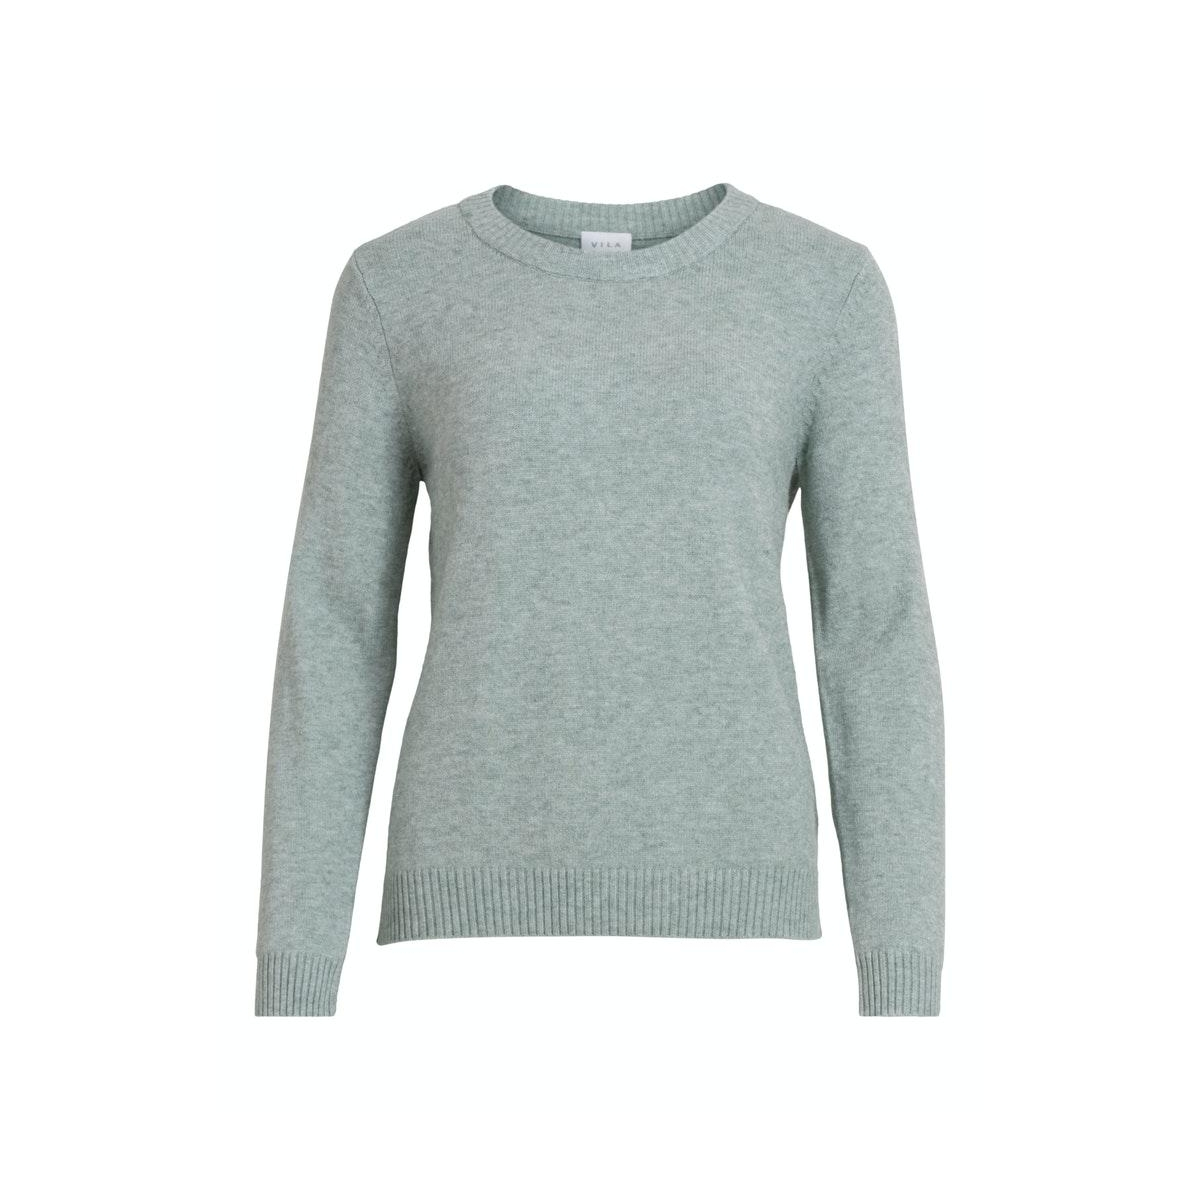 viril o-neck l/s  knit top - noos 14054177 vila trui green milieu/melange